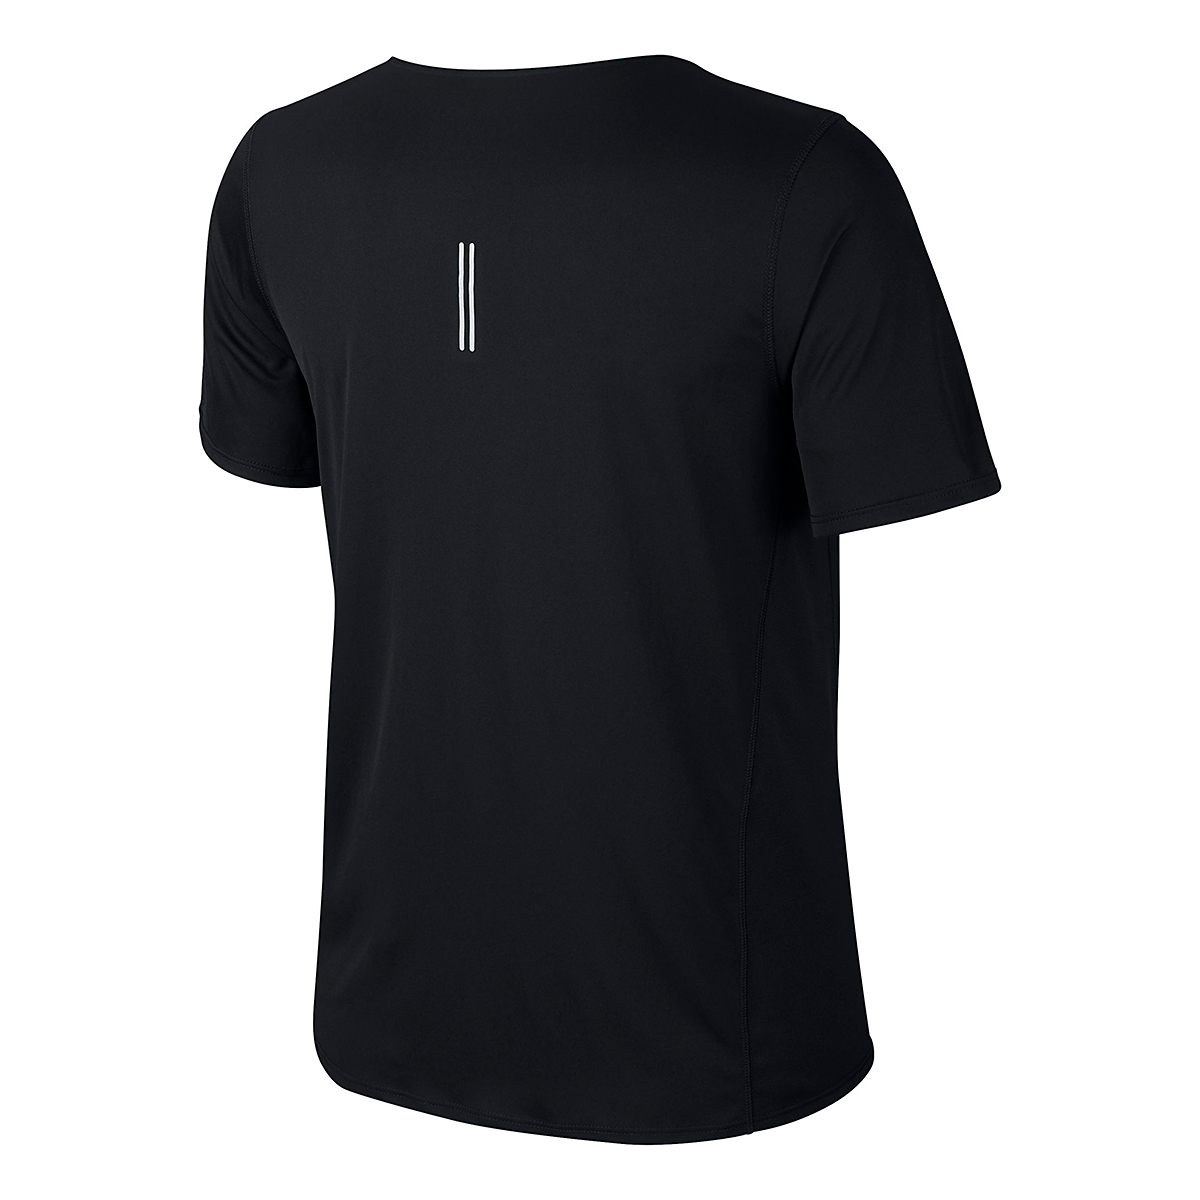 Women's Nike City Sleek Short Sleeve Top - Color: Black/Reflective Silver - Size: XS, Black/Reflective Silver, large, image 4